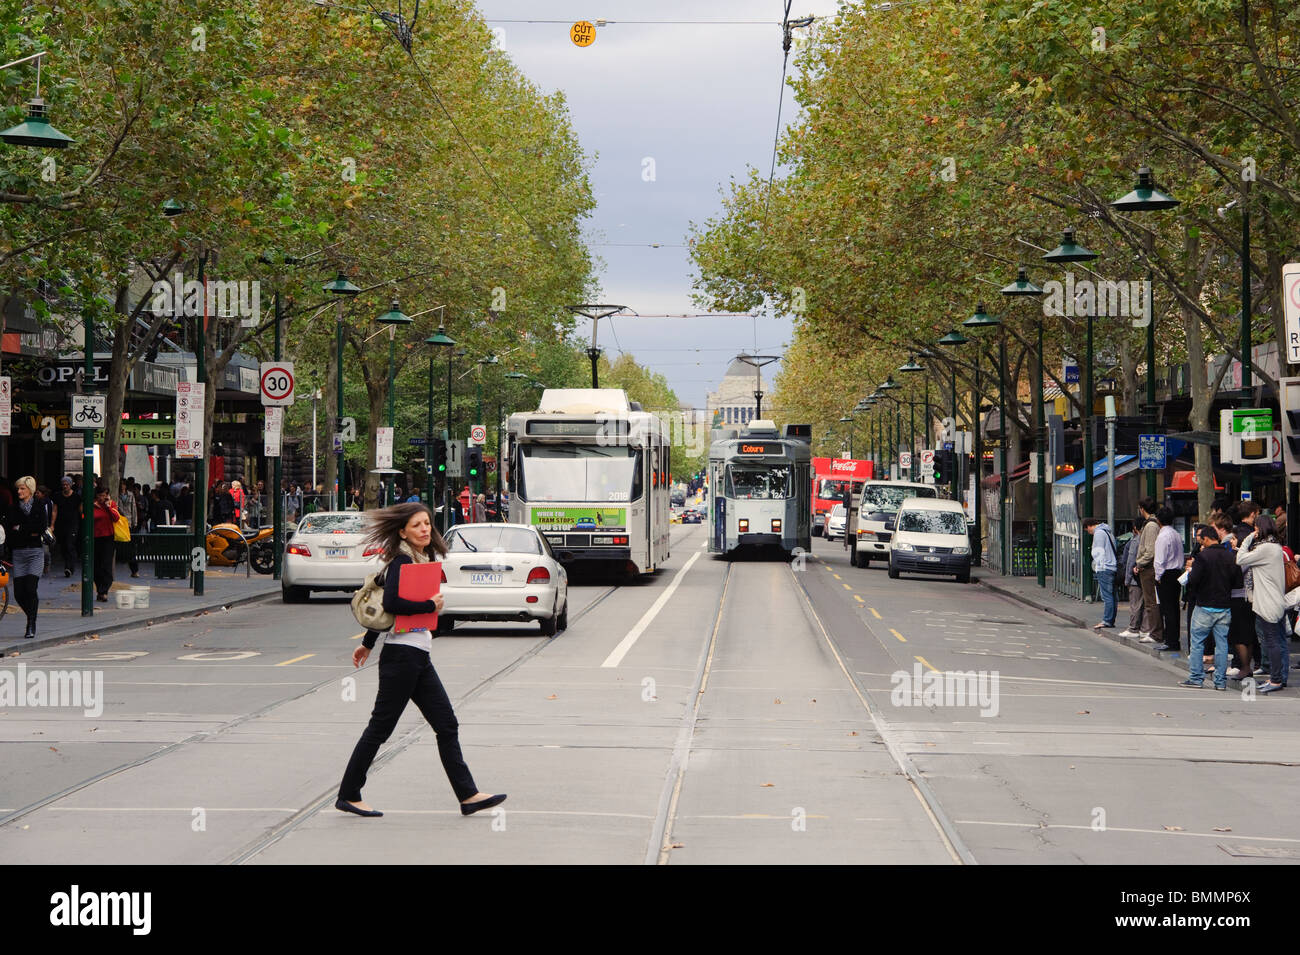 Swanston Street and Shrine of Remembrance - Stock Image